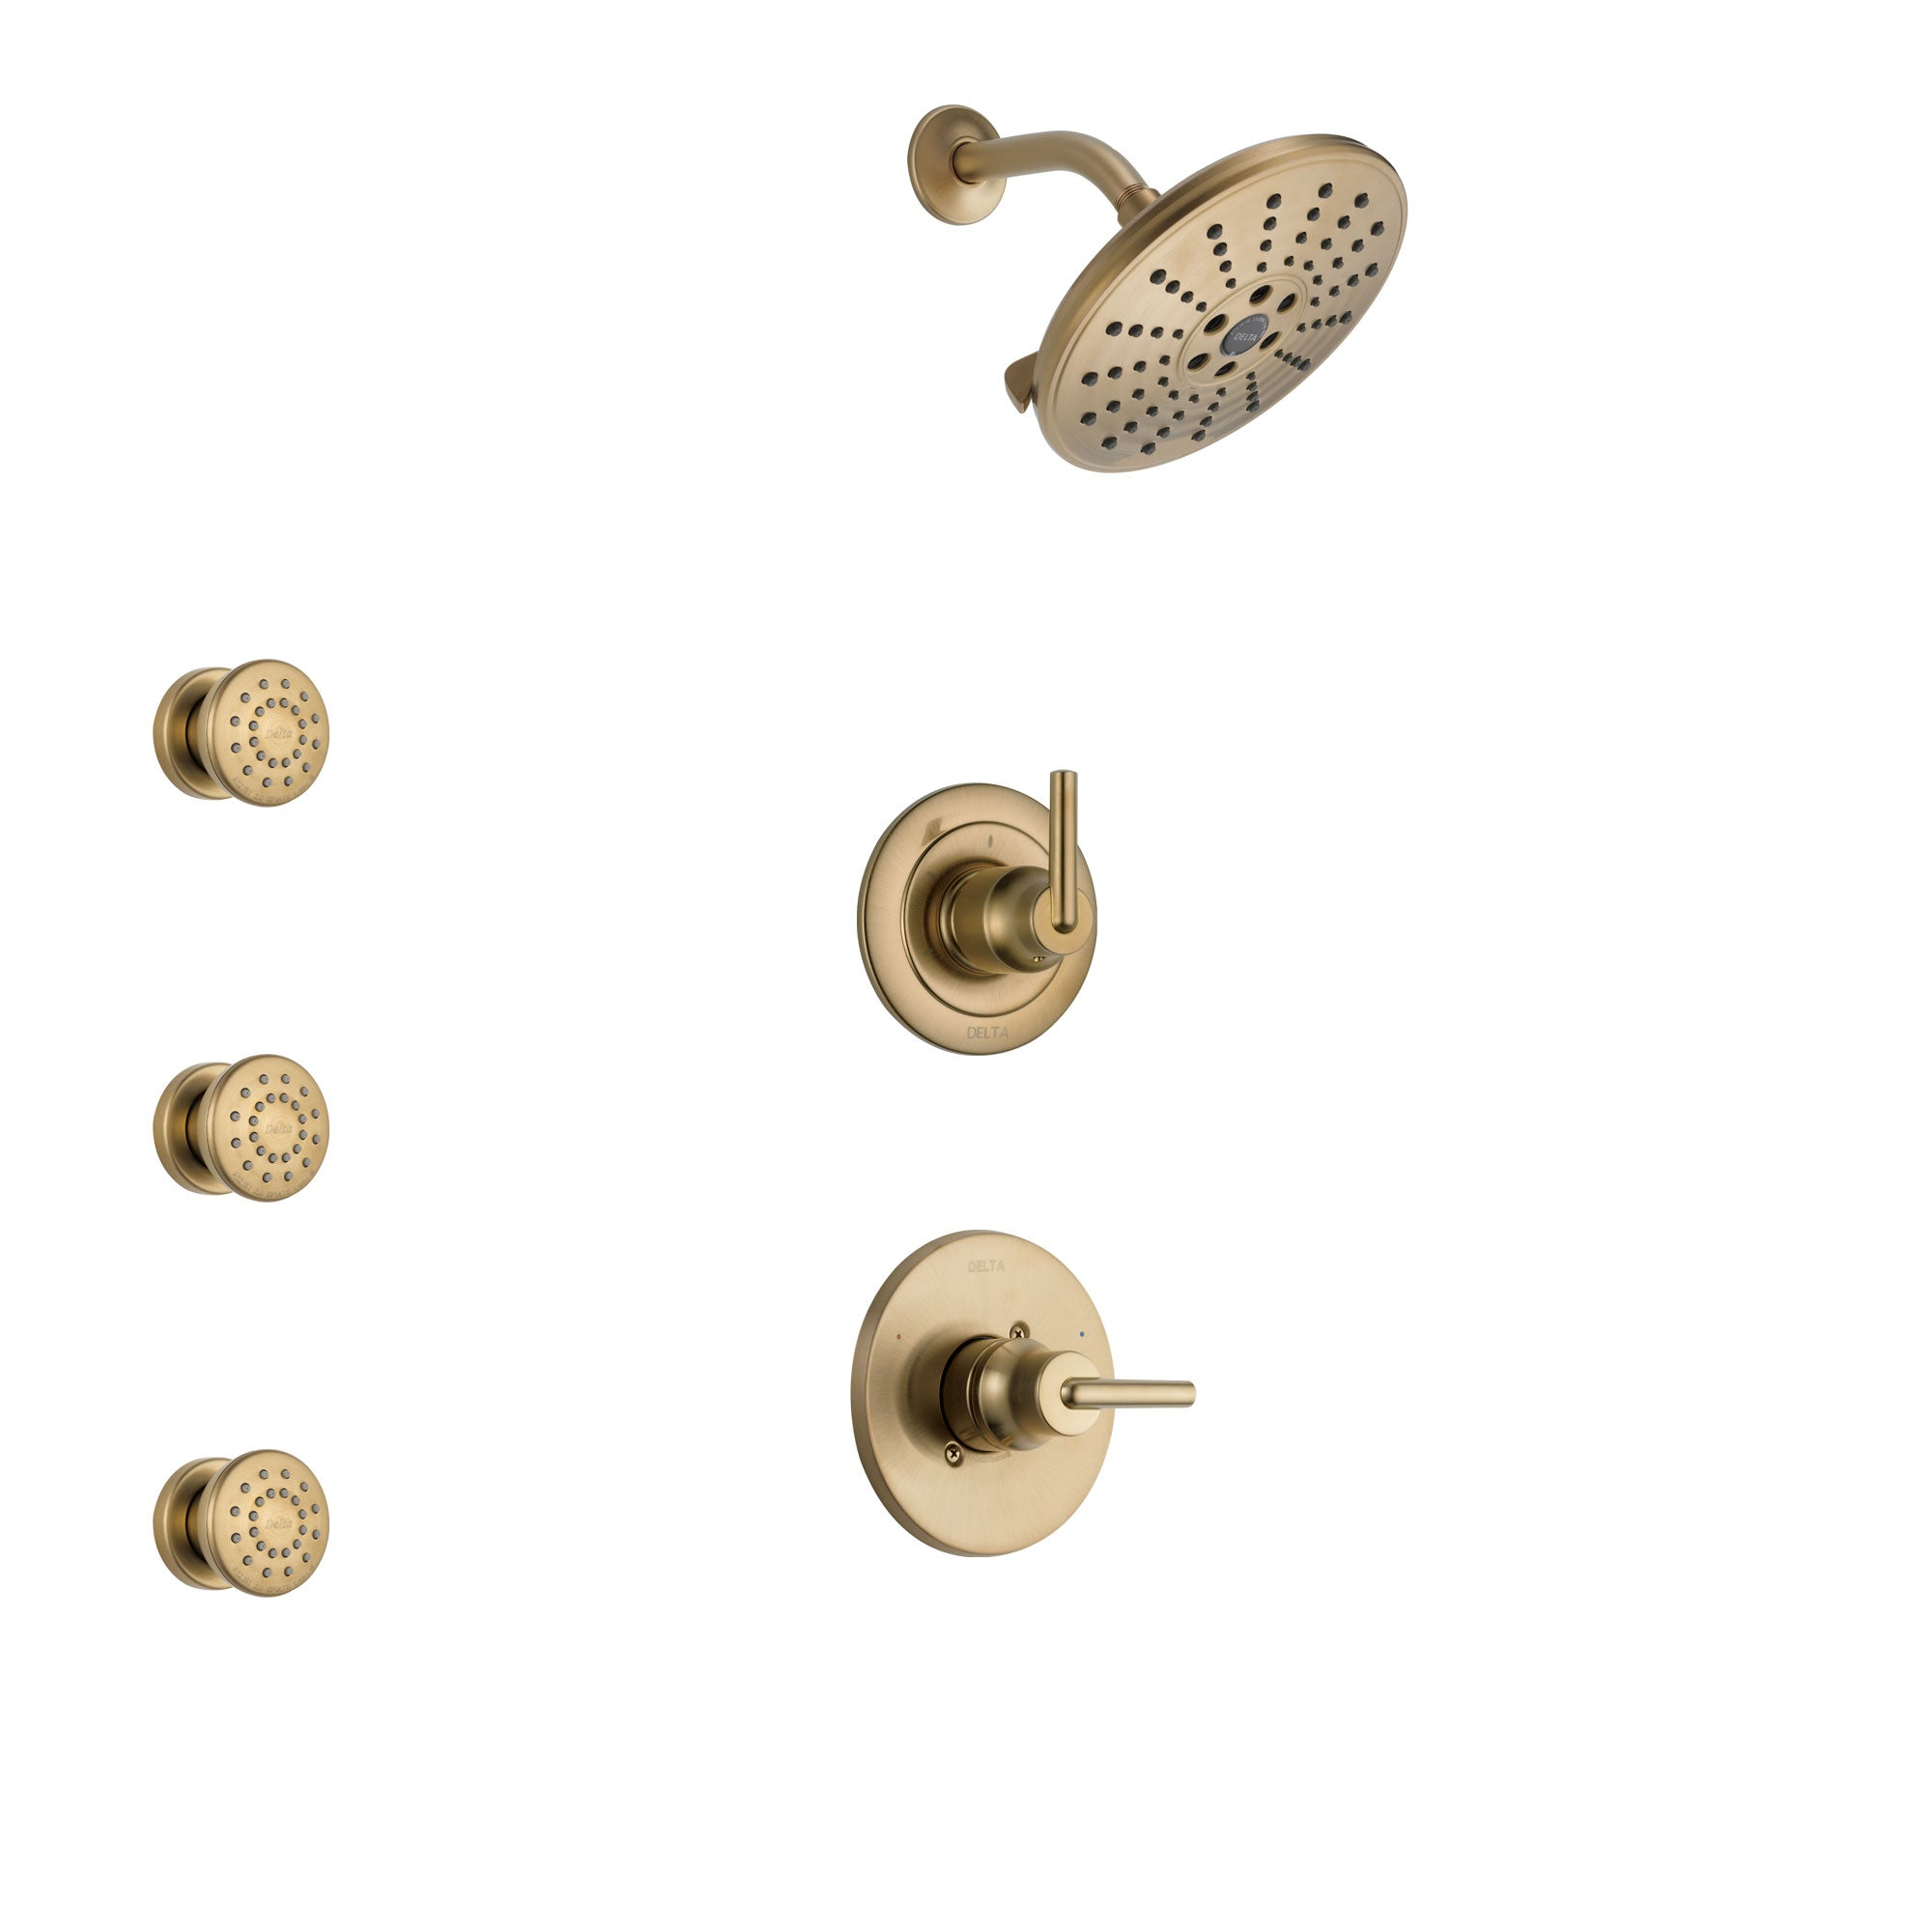 Delta Trinsic Champagne Bronze Finish Shower System with Control Handle, 3-Setting Diverter, Showerhead, and 3 Body Sprays SS1459CZ3